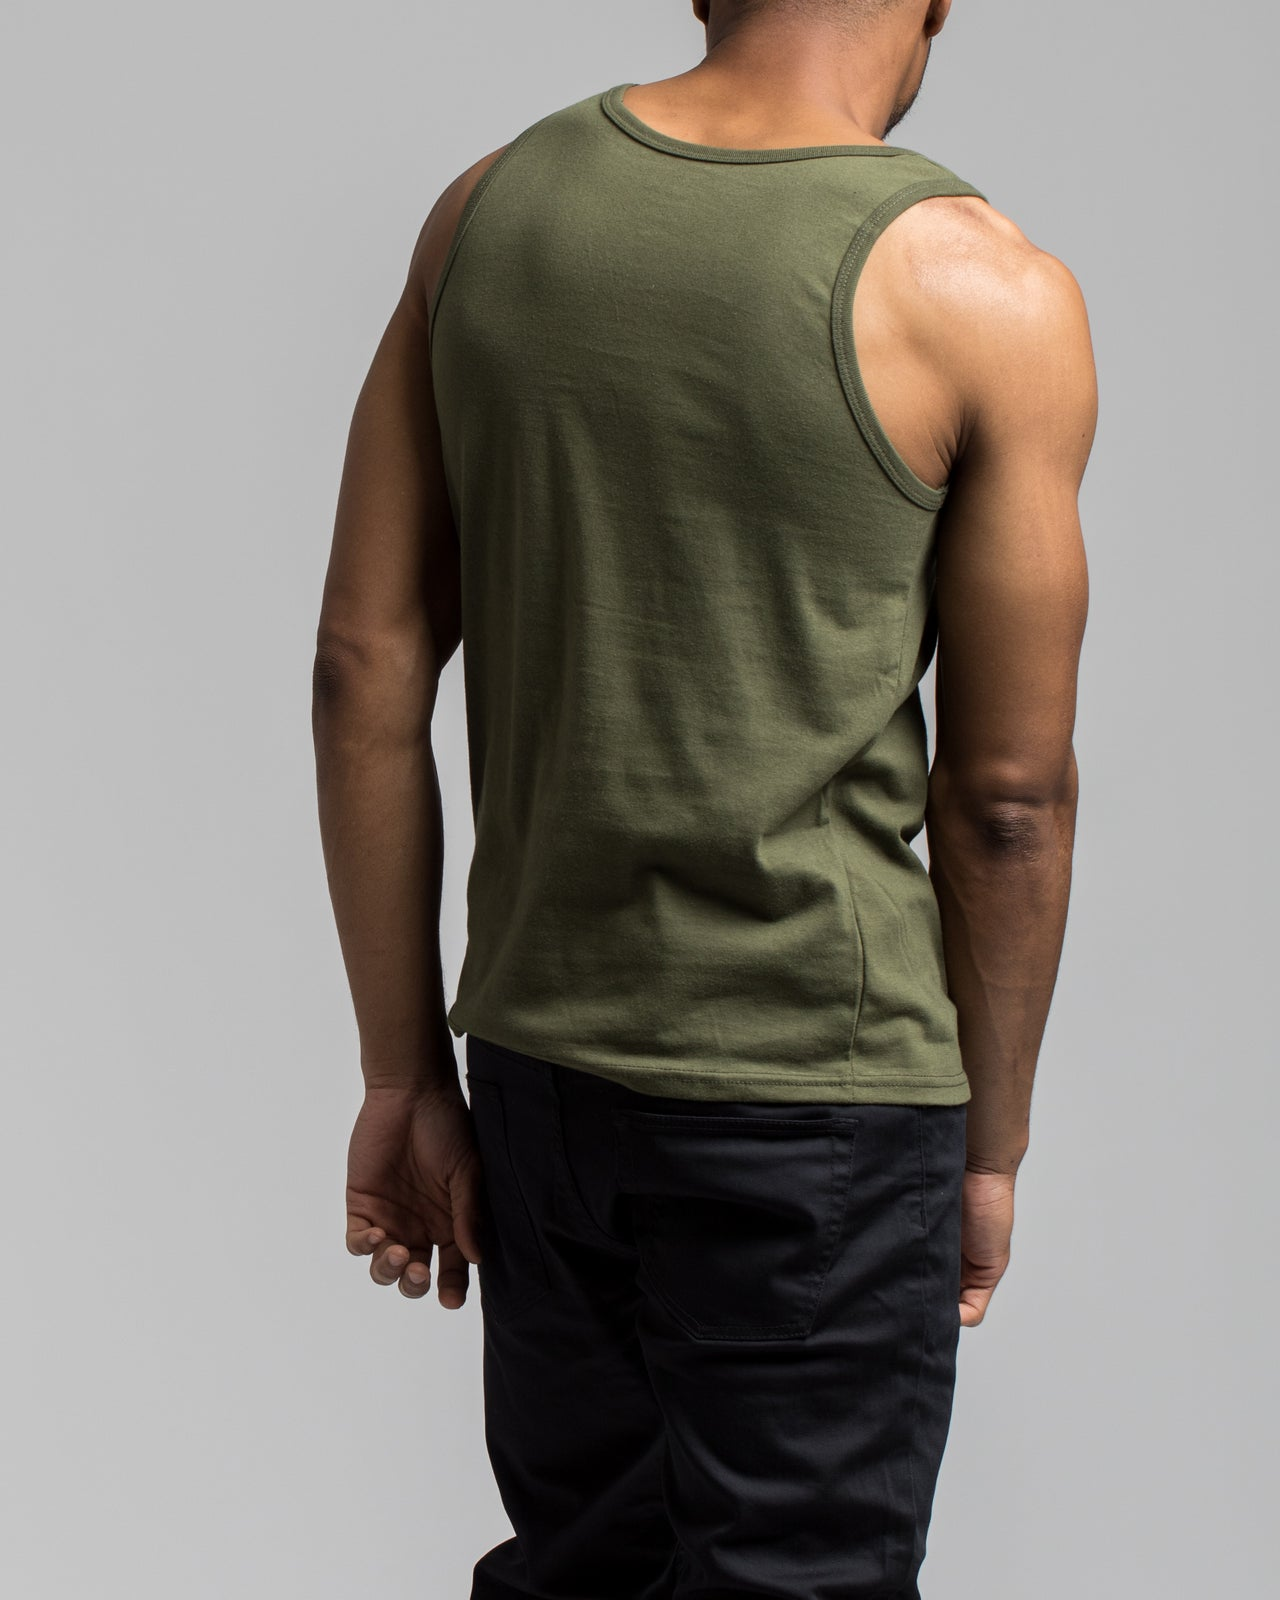 Basic Tank Top - Color: Olive Drab | Green